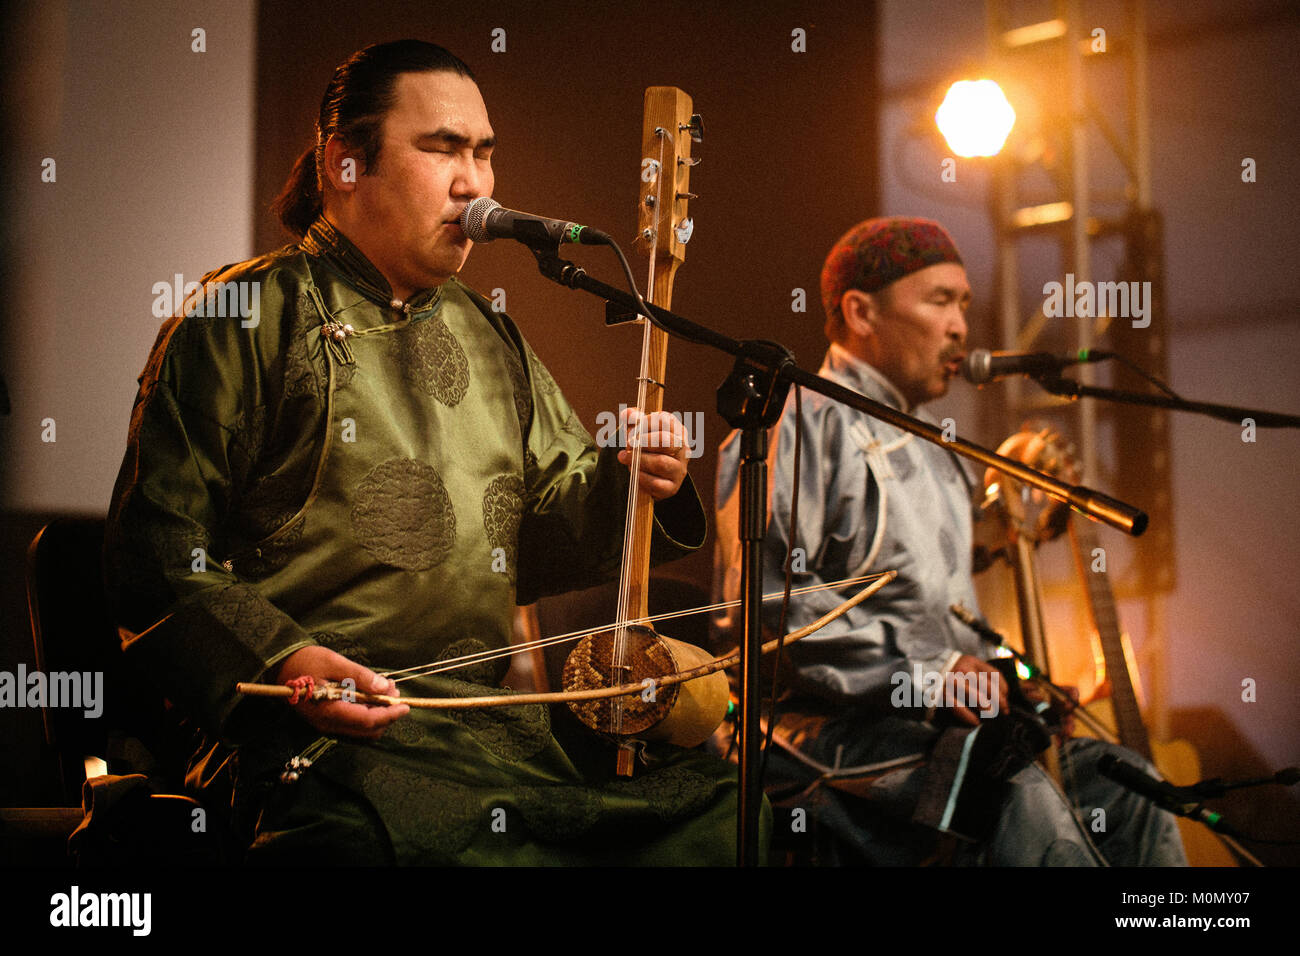 The Russian-Mongolian folk and throat singing band Huun-Huur